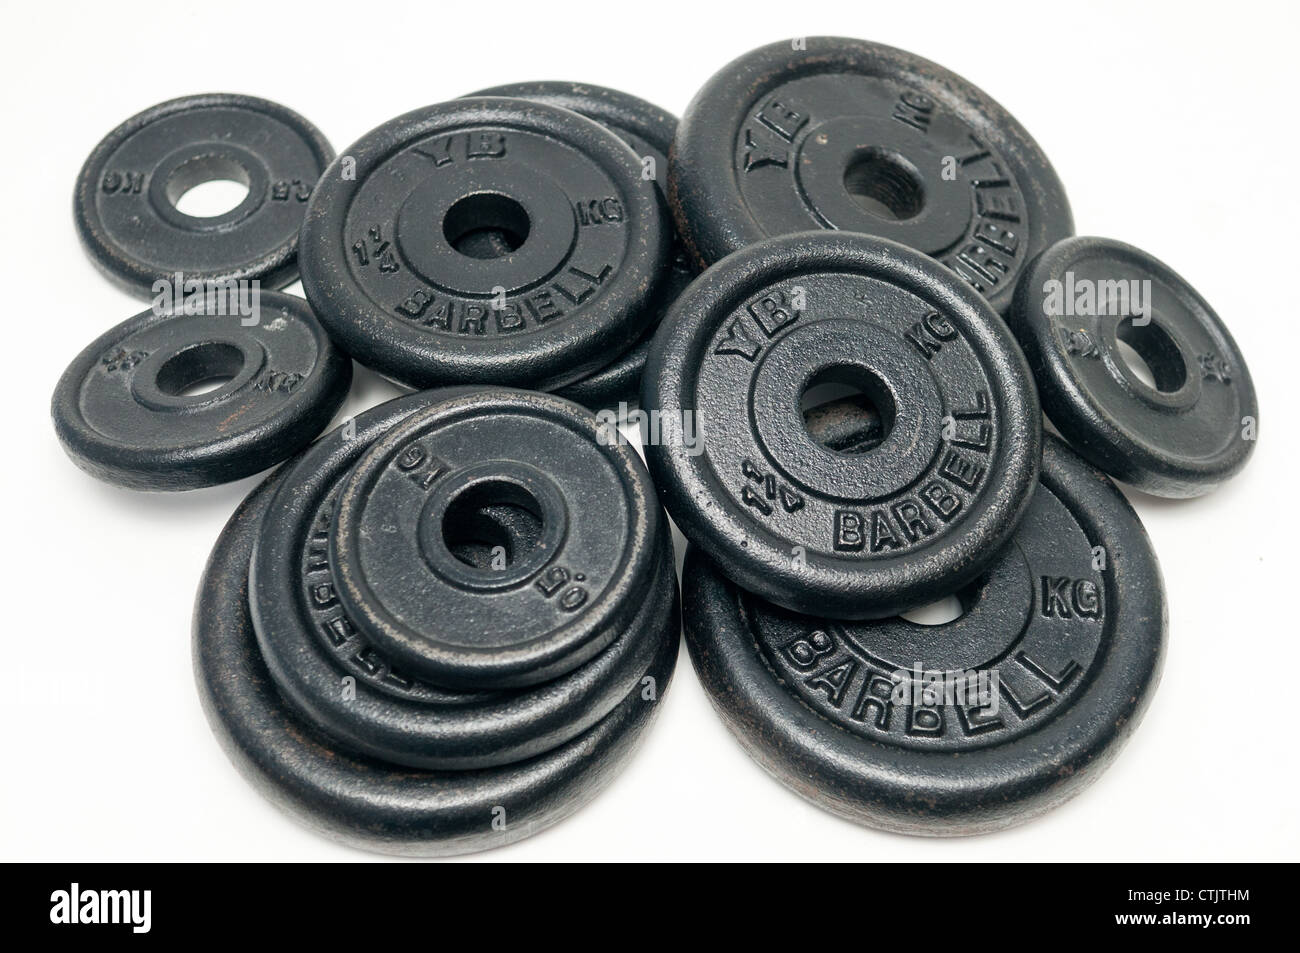 Pile of dumbbell weight discs - Stock Image